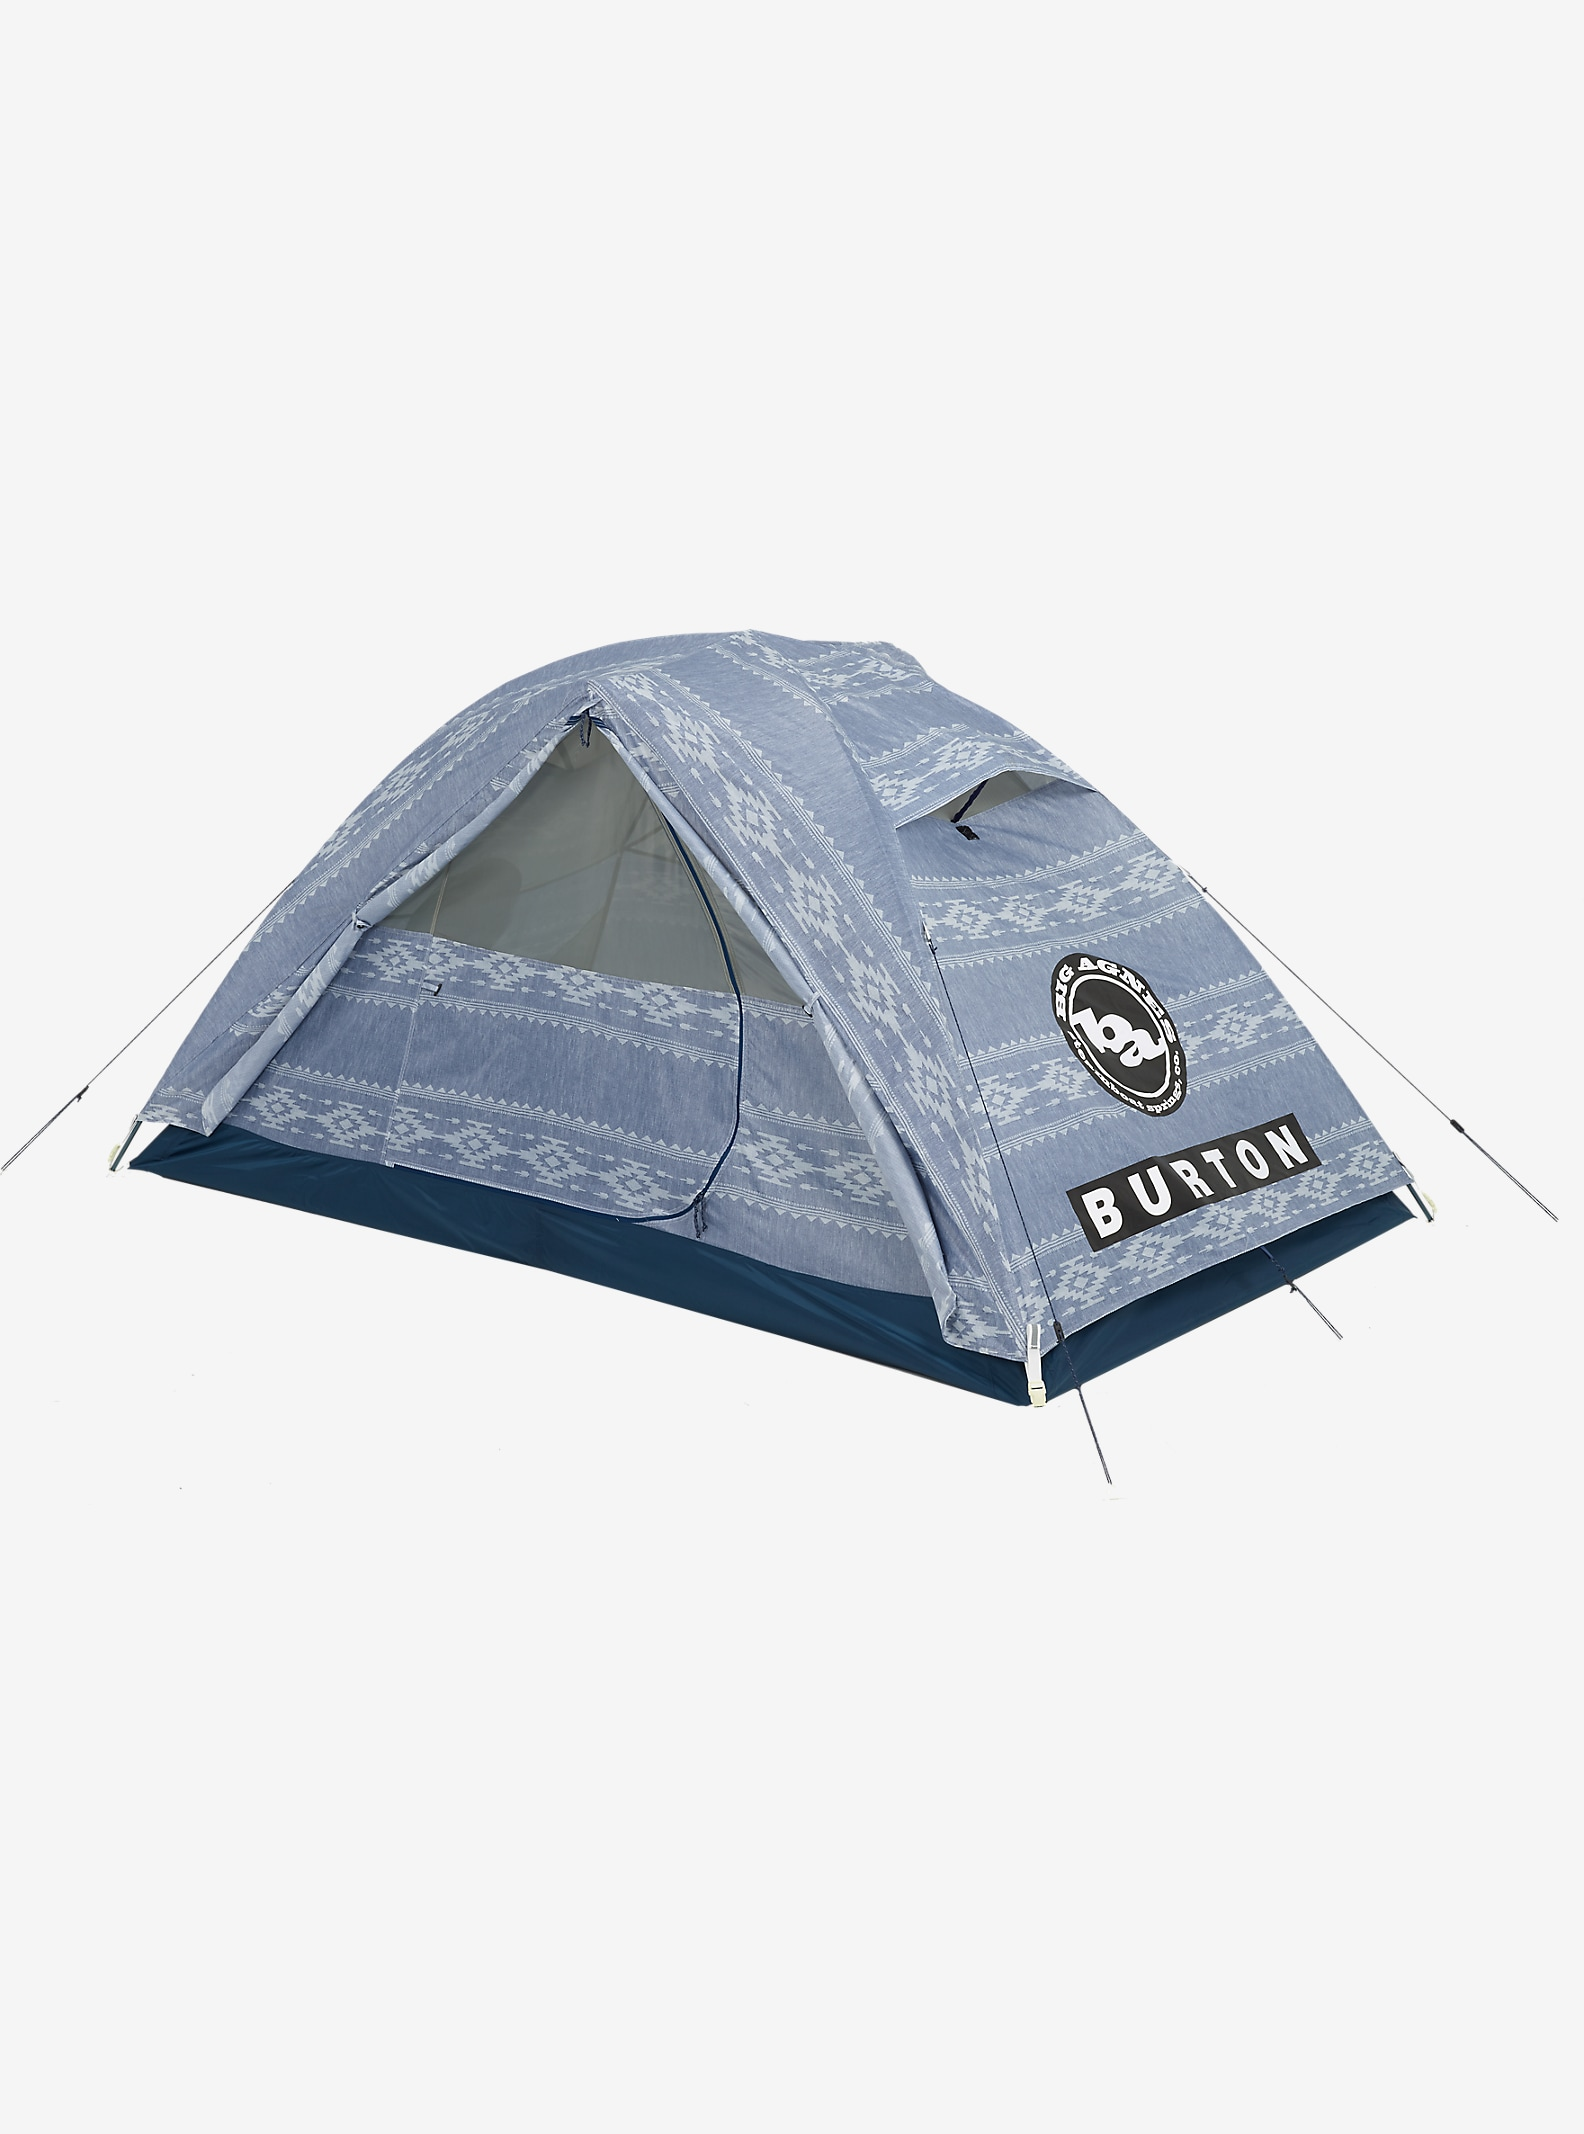 Big Agnes x Burton Nightcap Tent shown in Famish Stripe